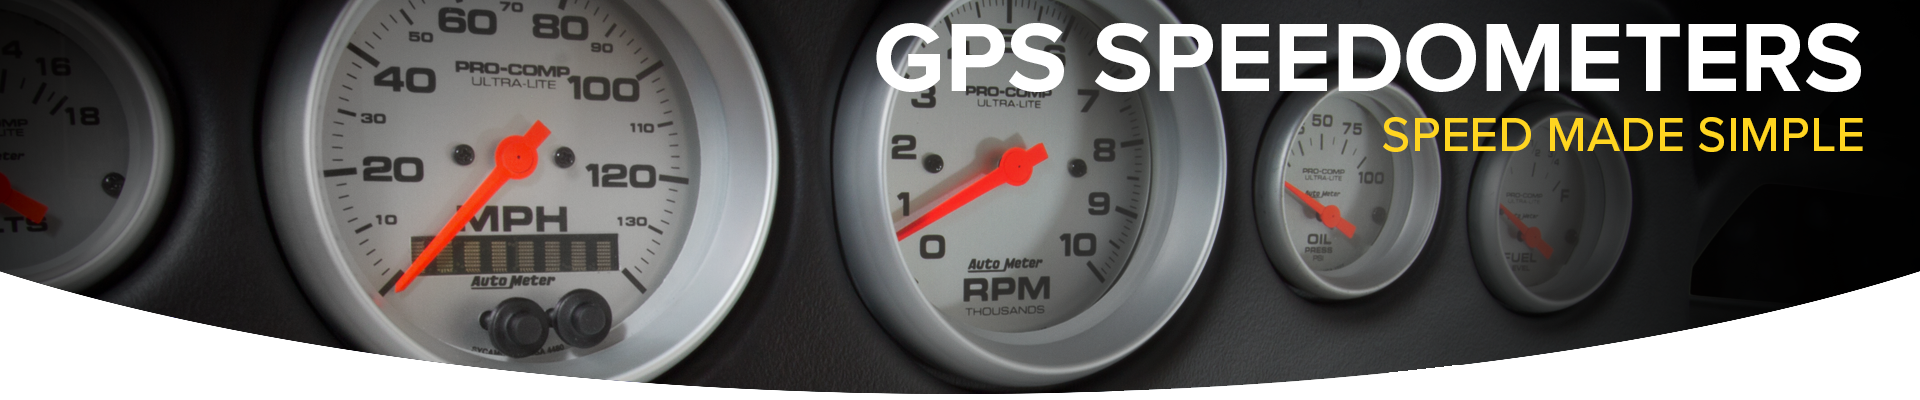 GPS Speedometers from AutoMeter